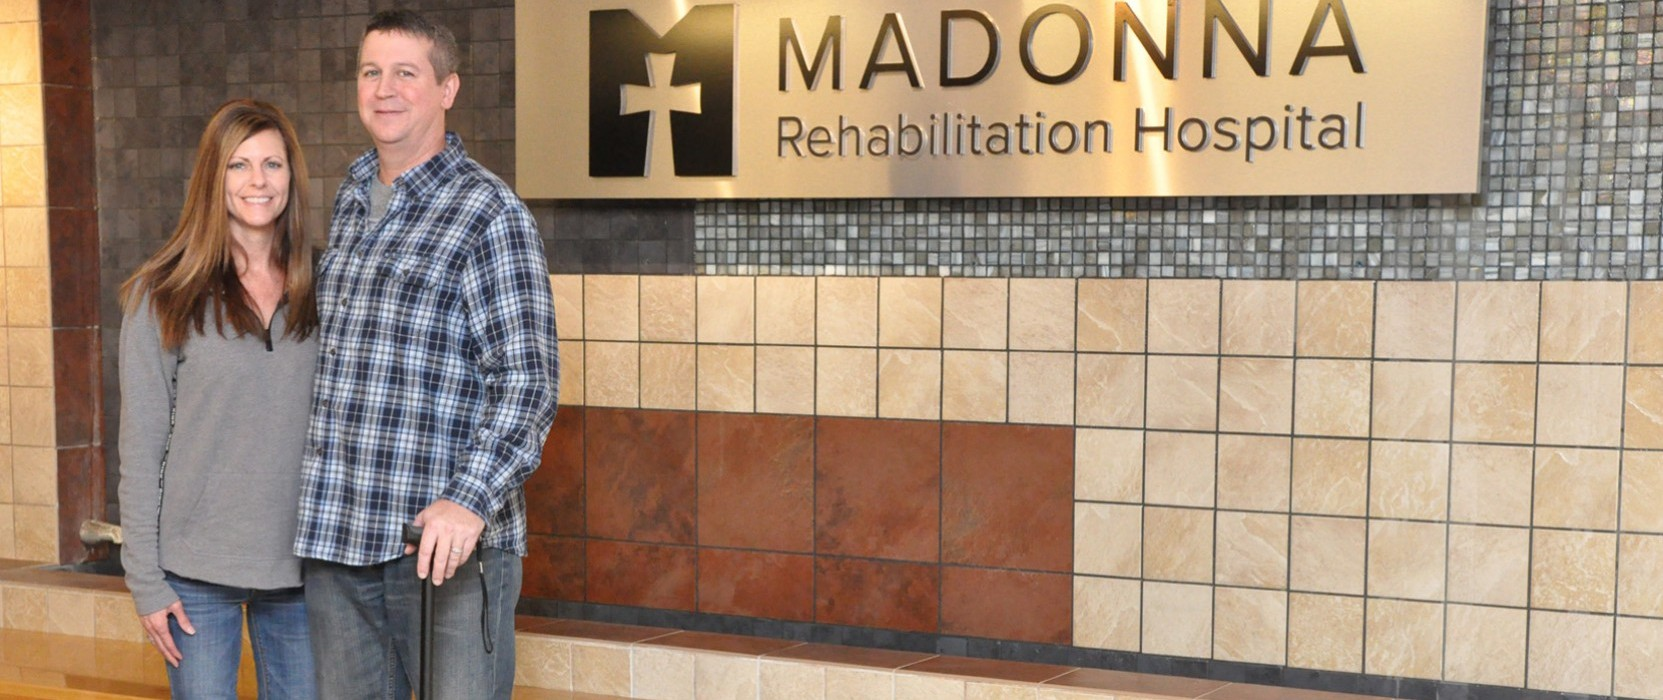 Madonna ranked No. 12 in Modern Healthcare magazine largest rehabilitation providers list